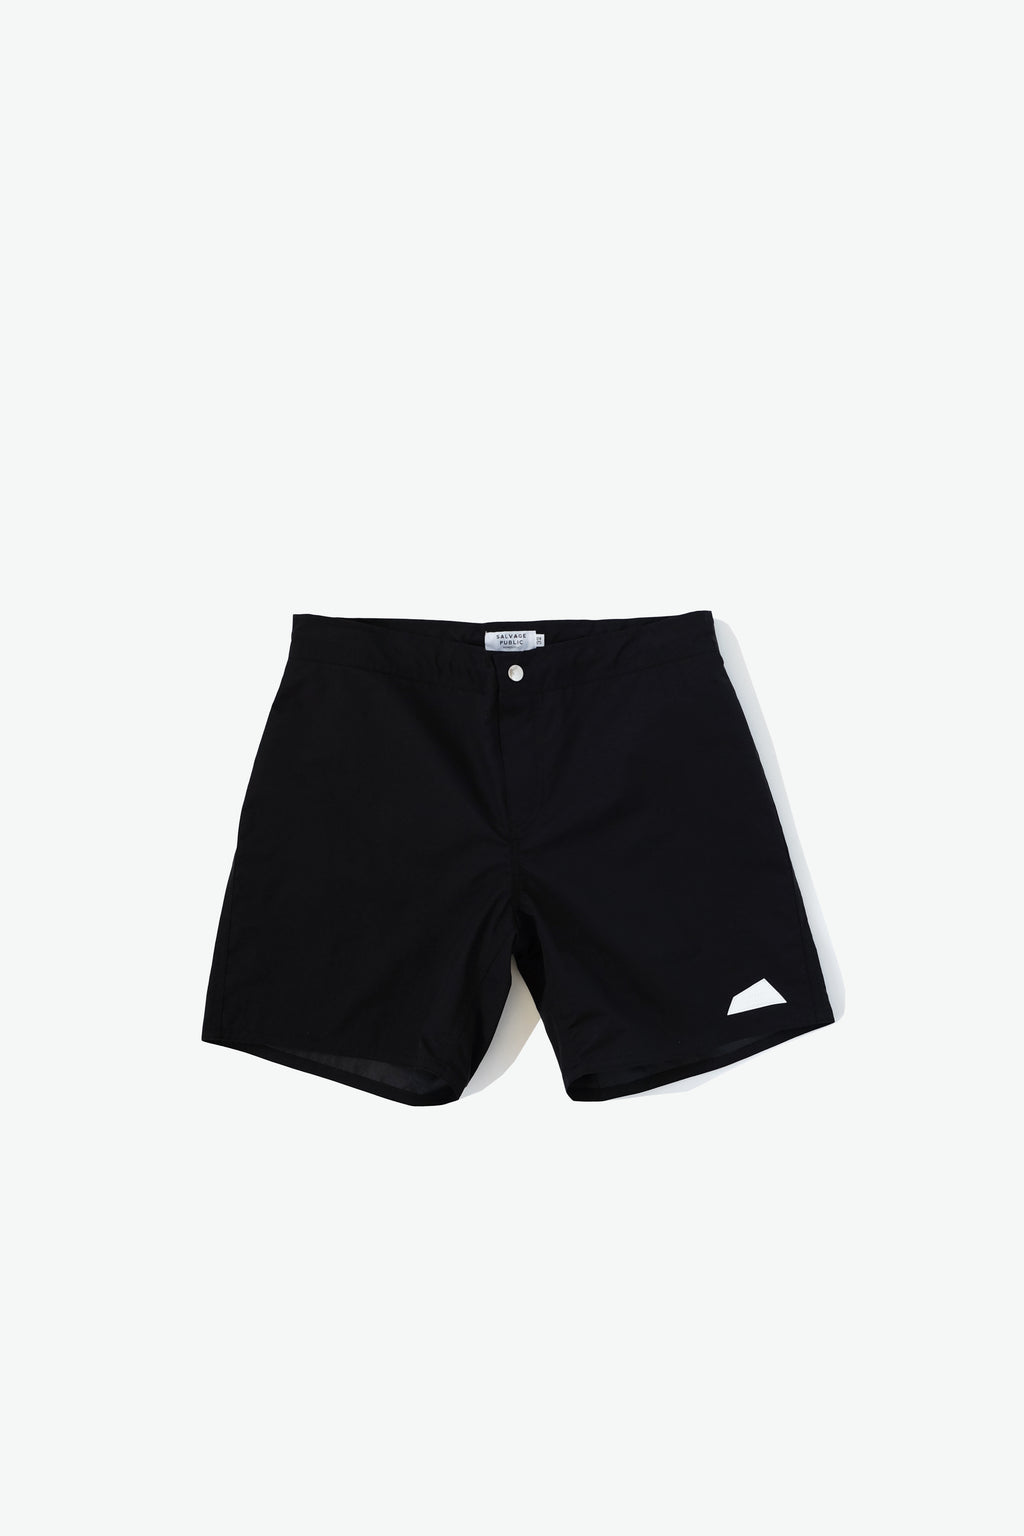 Shorts - Koko Boardshort - Black